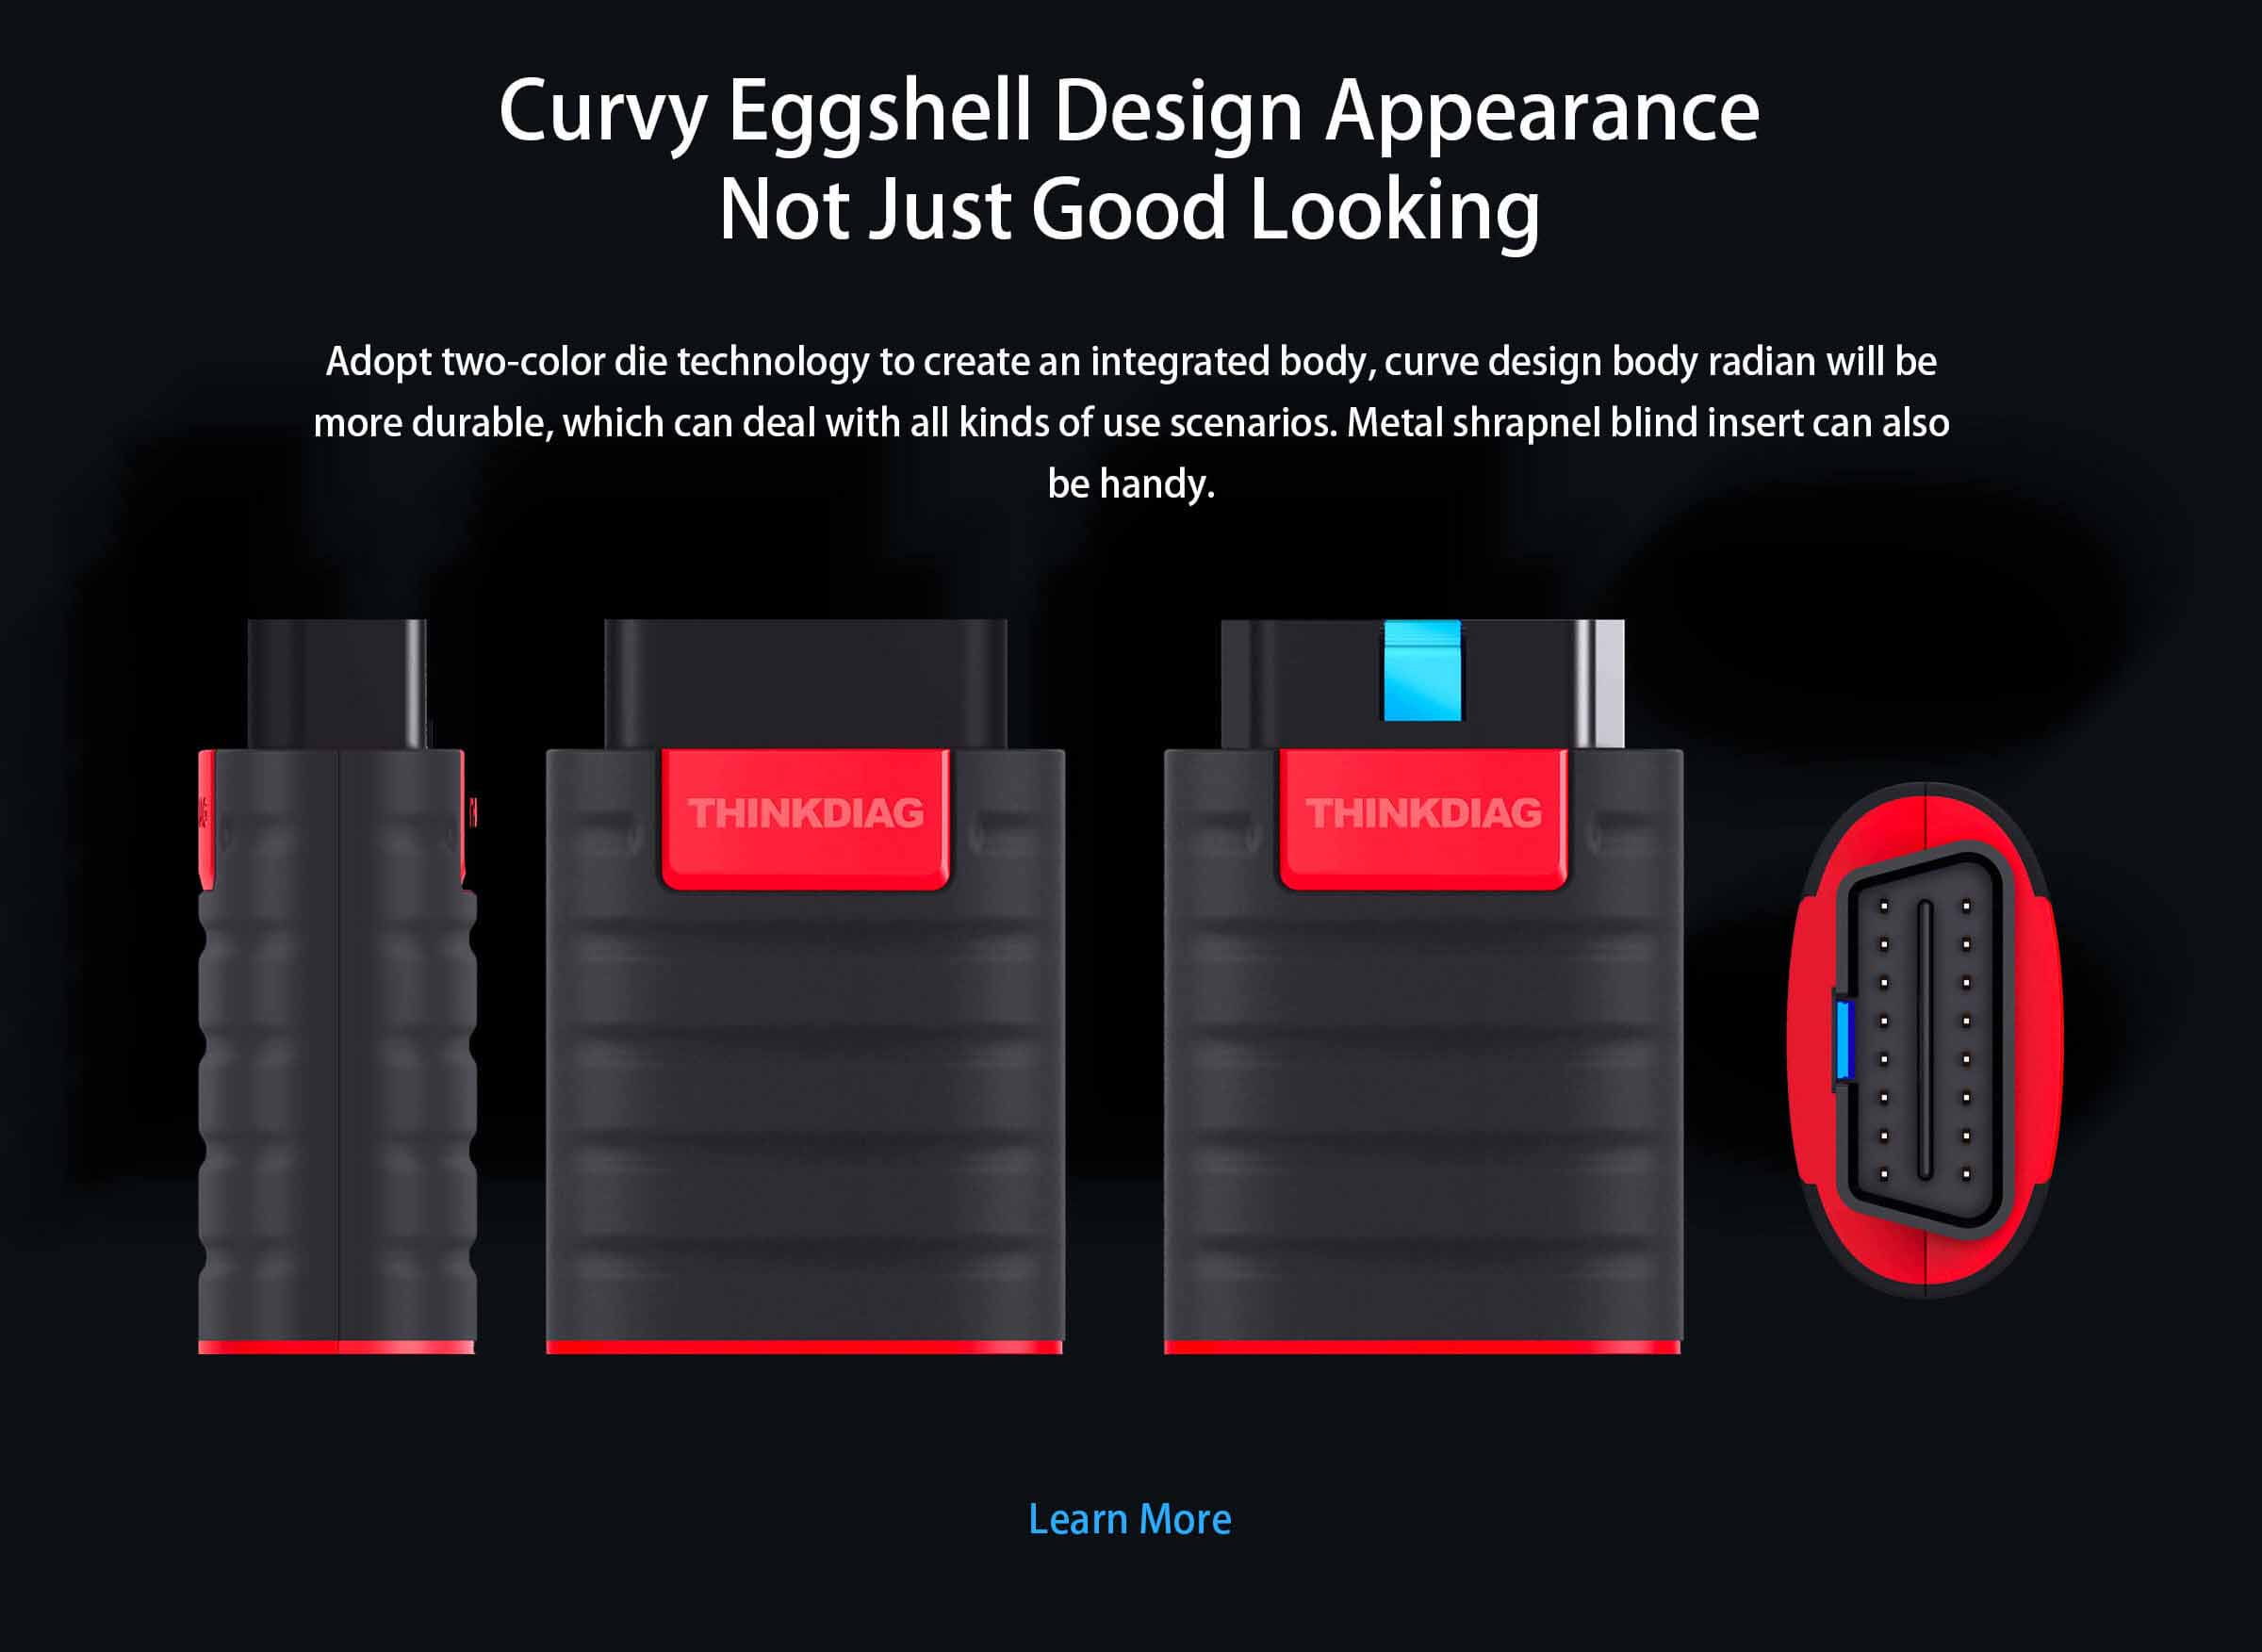 The Thinkdiag device has a Curvy Eggshell Design Appearance So It Is Good Looking But Not Just Good Looking The Is Much More To The Device.